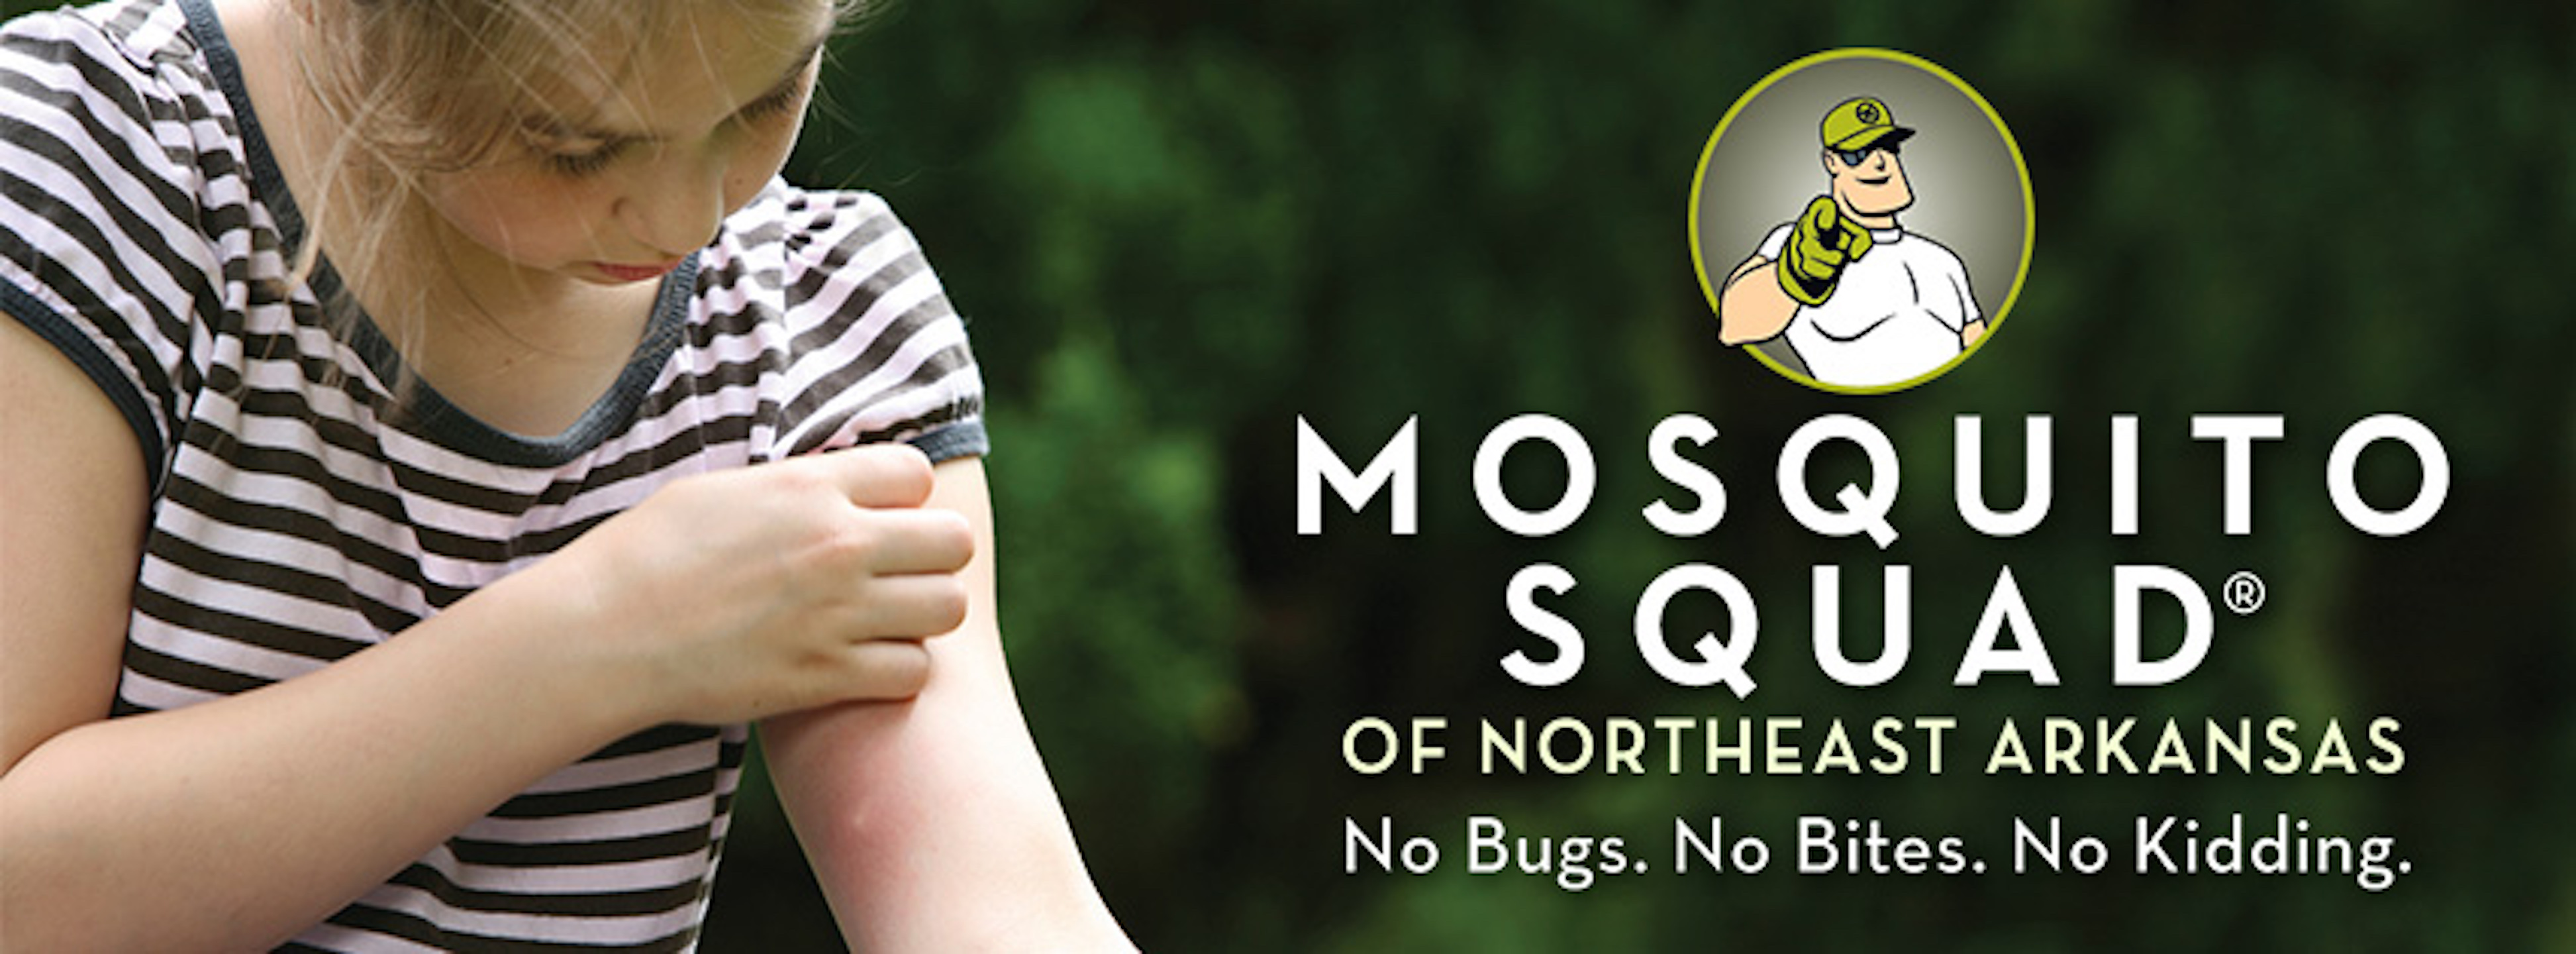 Girl with mosquito bite. Avoid bites with Mosquito Squad Mosquito Control